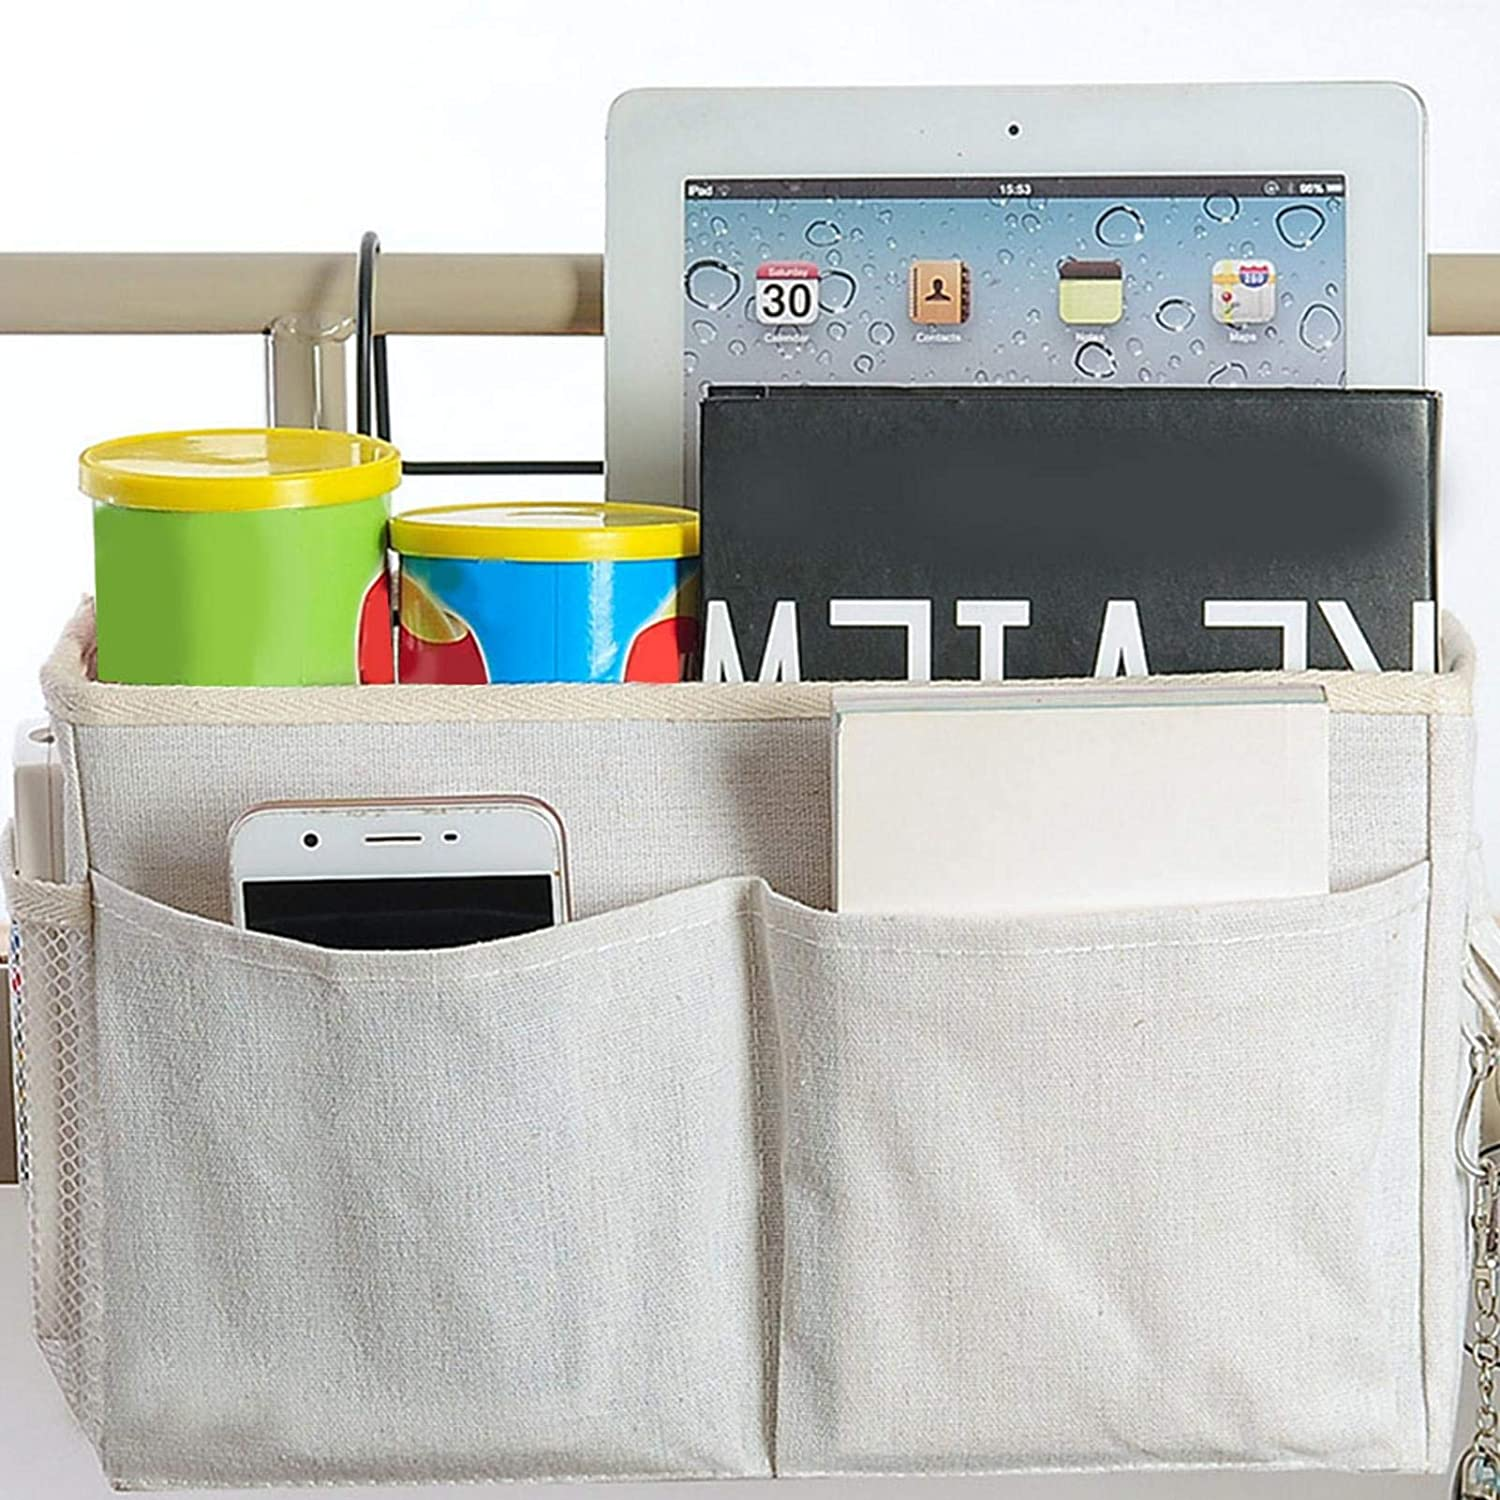 Storage Hanging Bag Large Capacity Canvas Storage Basket for Dormitory Bed Sofa for Tablets Books Snacks and More,White//Gray Luckycyc Bedside Caddy